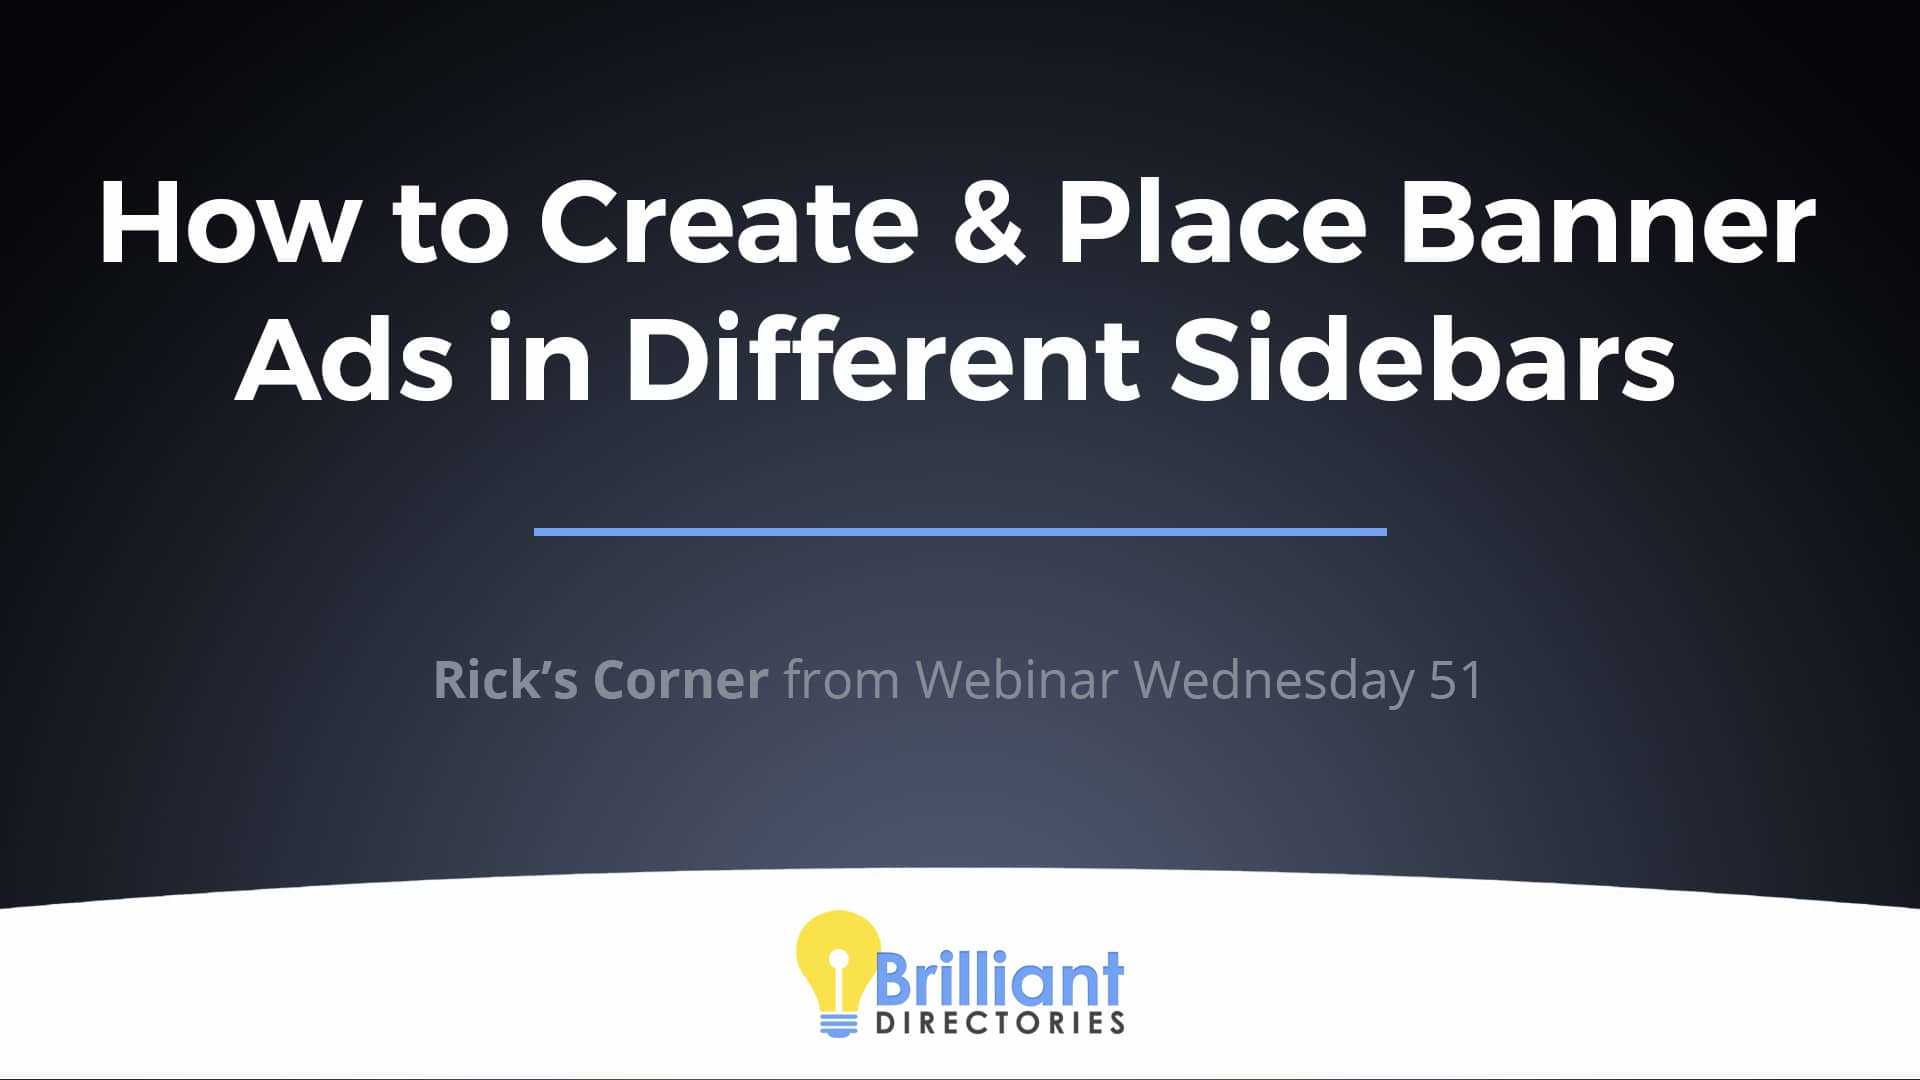 How to Create & Place Banner Ads in Different Sidebars